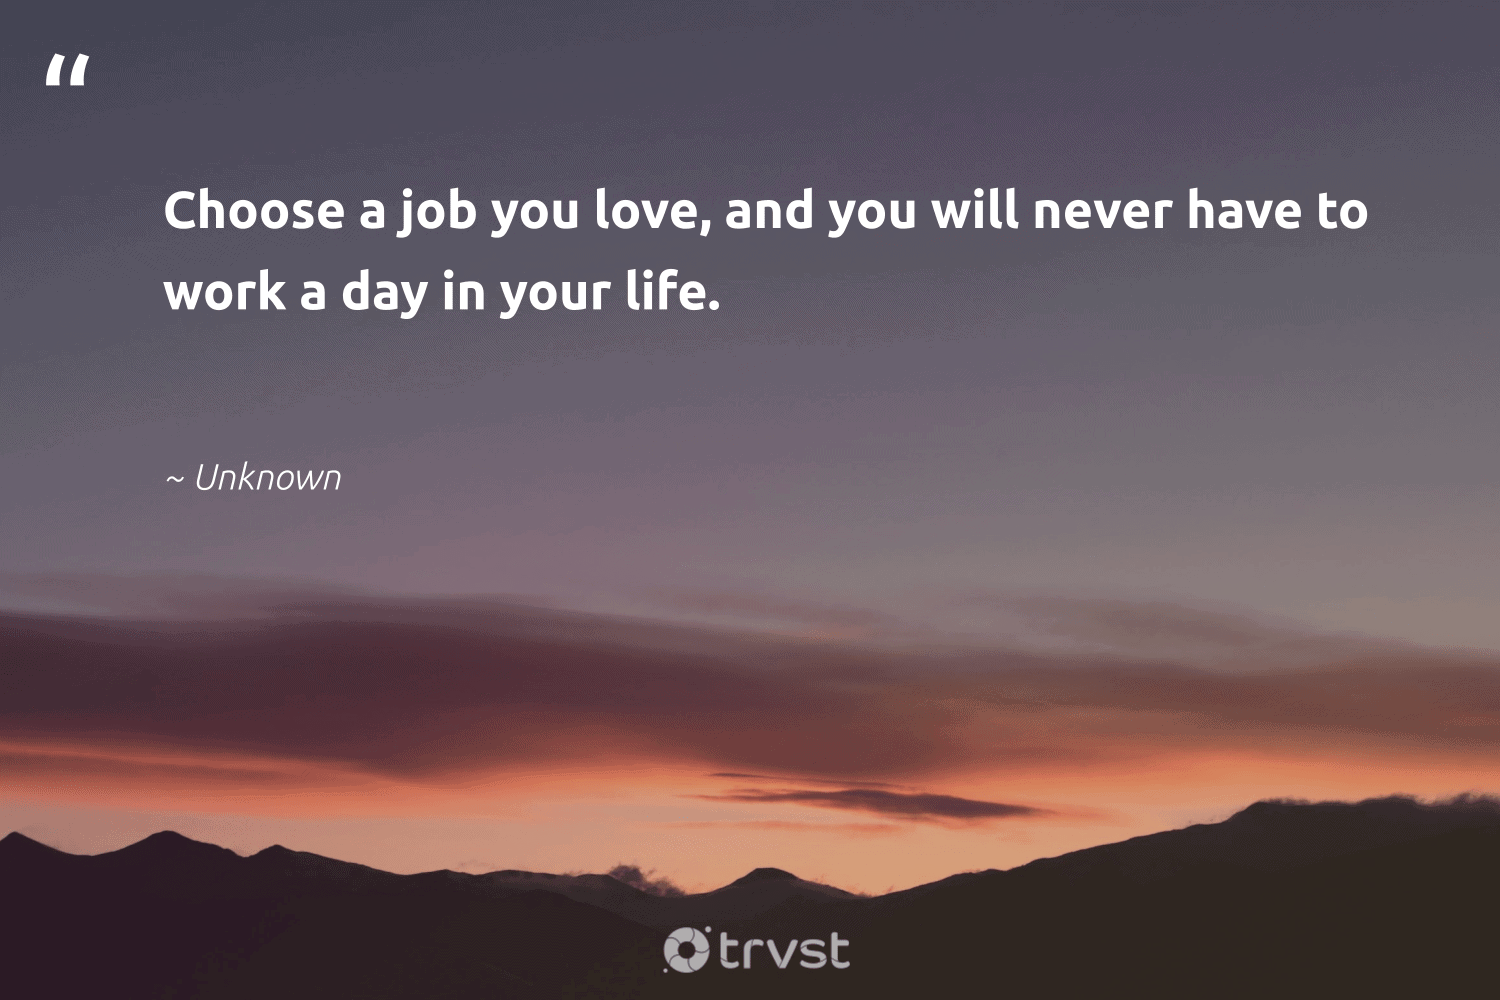 """""""Choose a job you love, and you will never have to work a day in your life.""""  - Unknown #trvst #quotes #love #nevergiveup #thinkgreen #softskills #dosomething #begreat #planetearthfirst #futureofwork #beinspired #bethechange"""